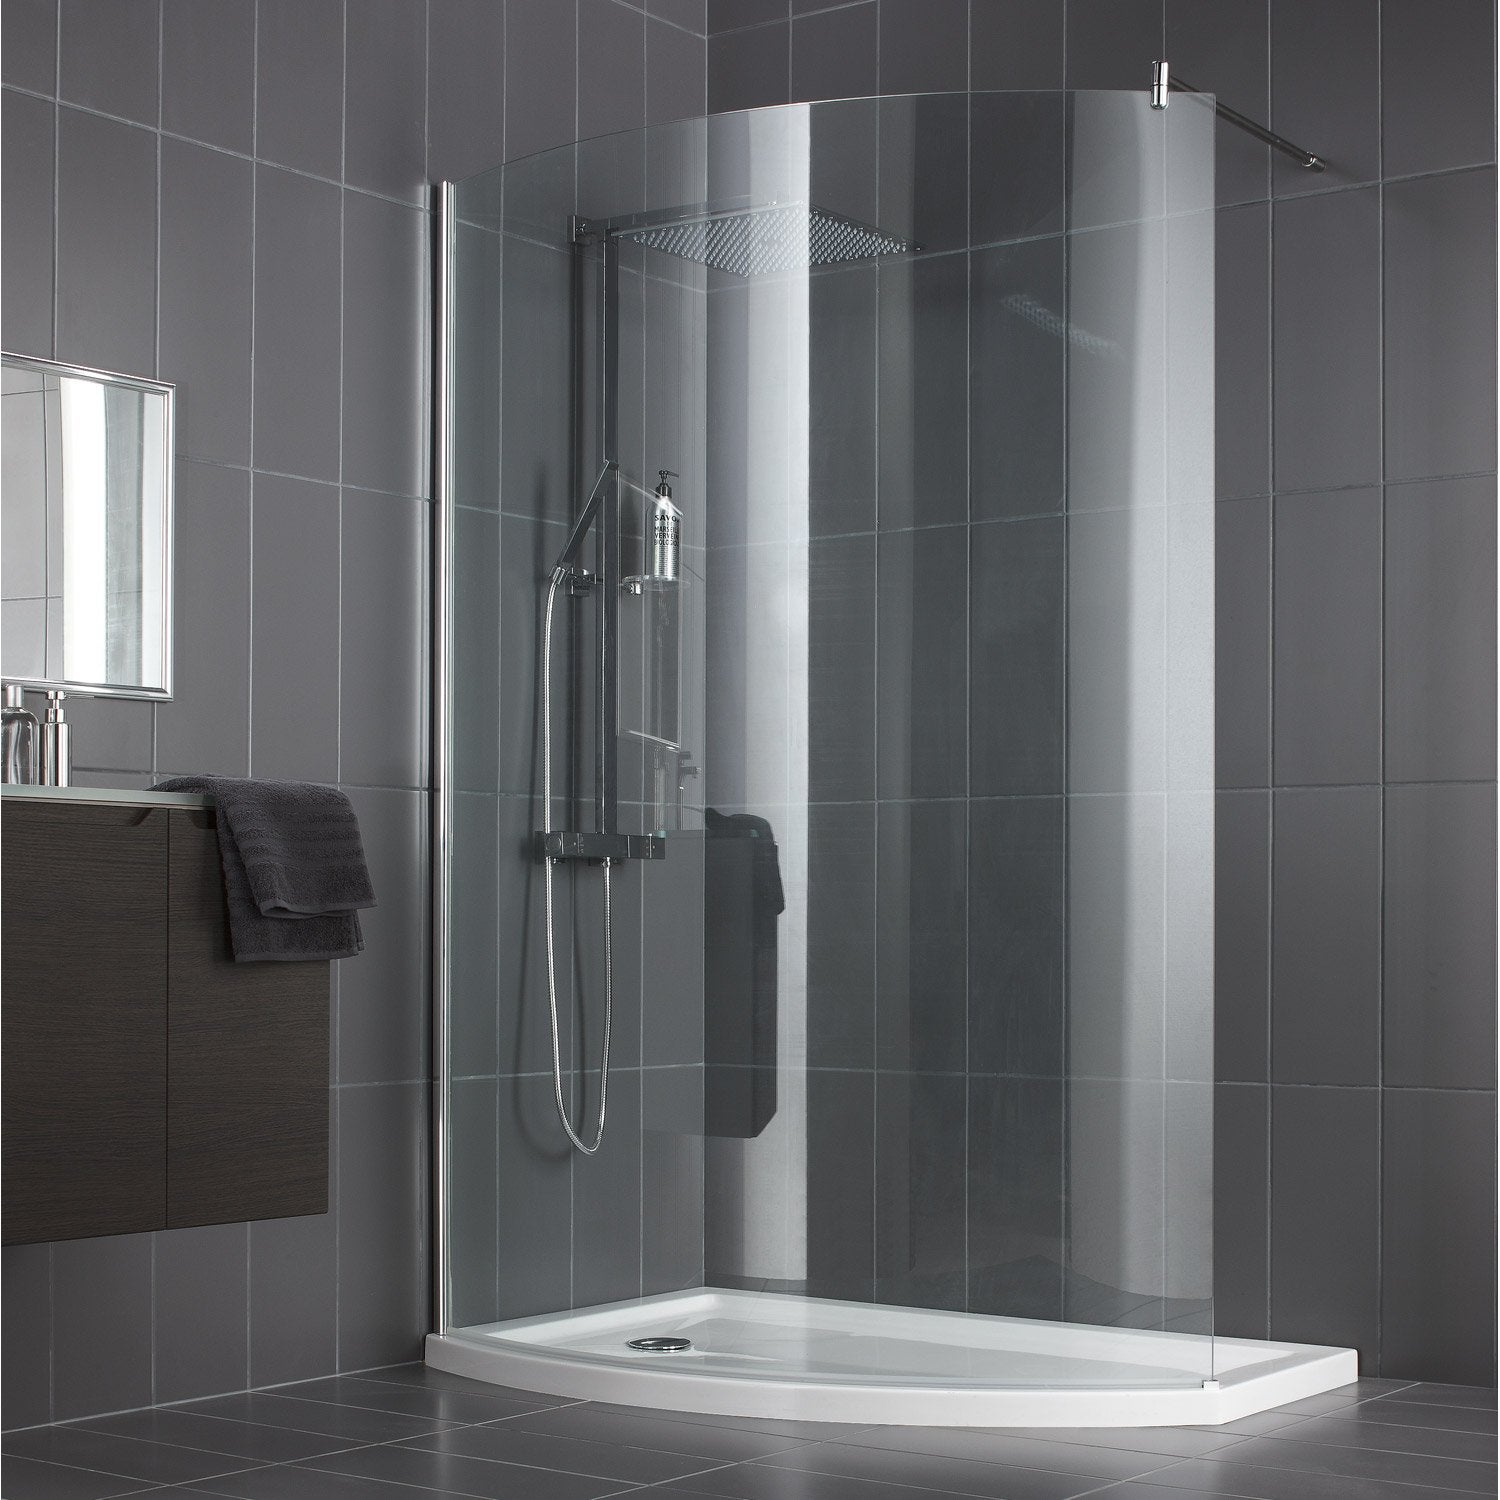 Paroi de douche l 39 italienne look profil chrom l for Photos de douche a l italienne